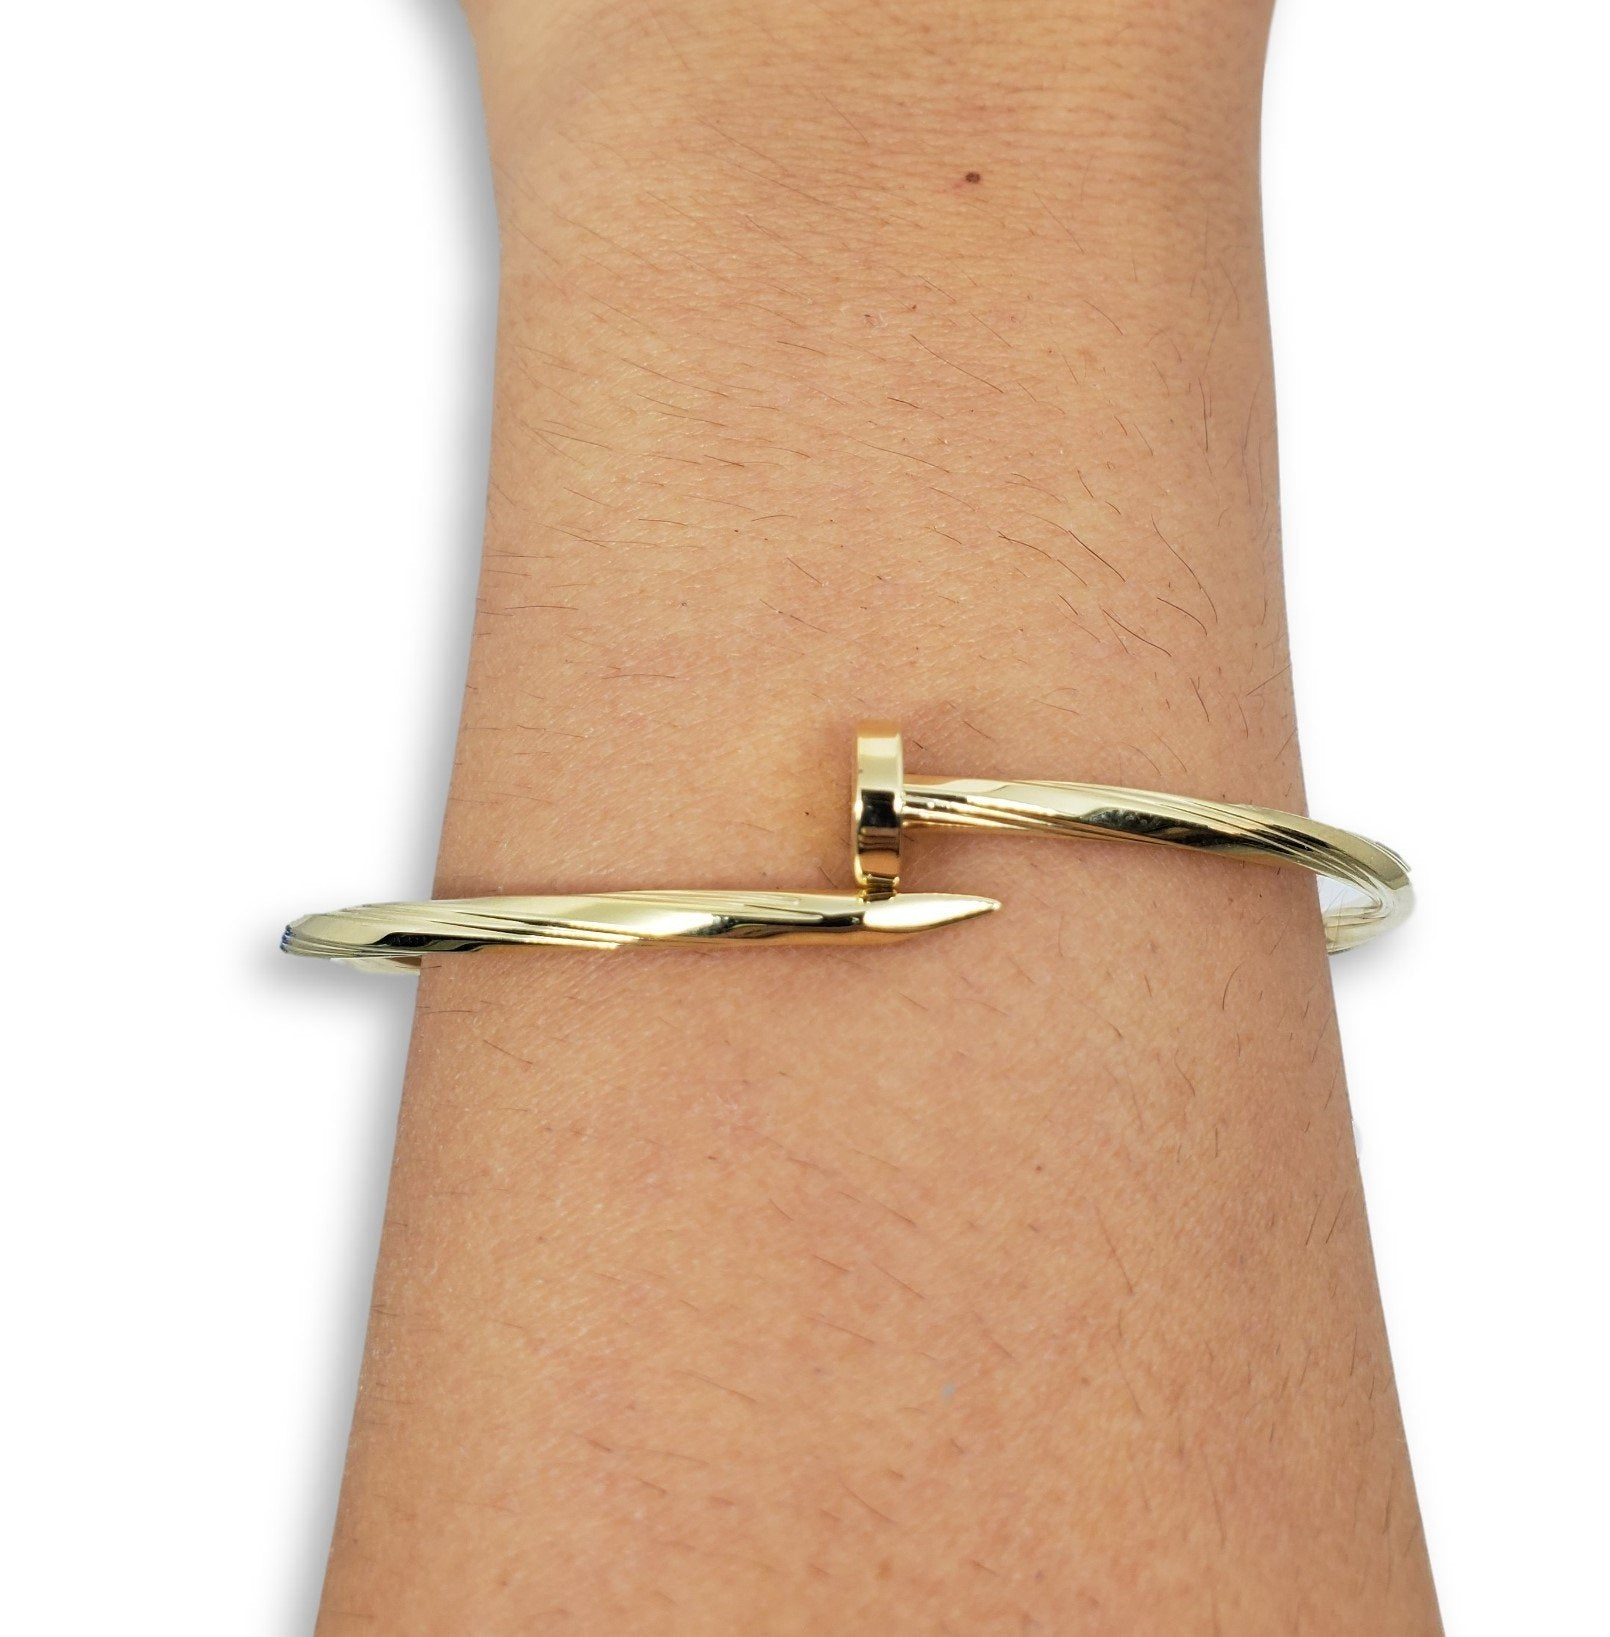 Bracelet10 en or 10K / Bangle10 in 10K gold - orquebec